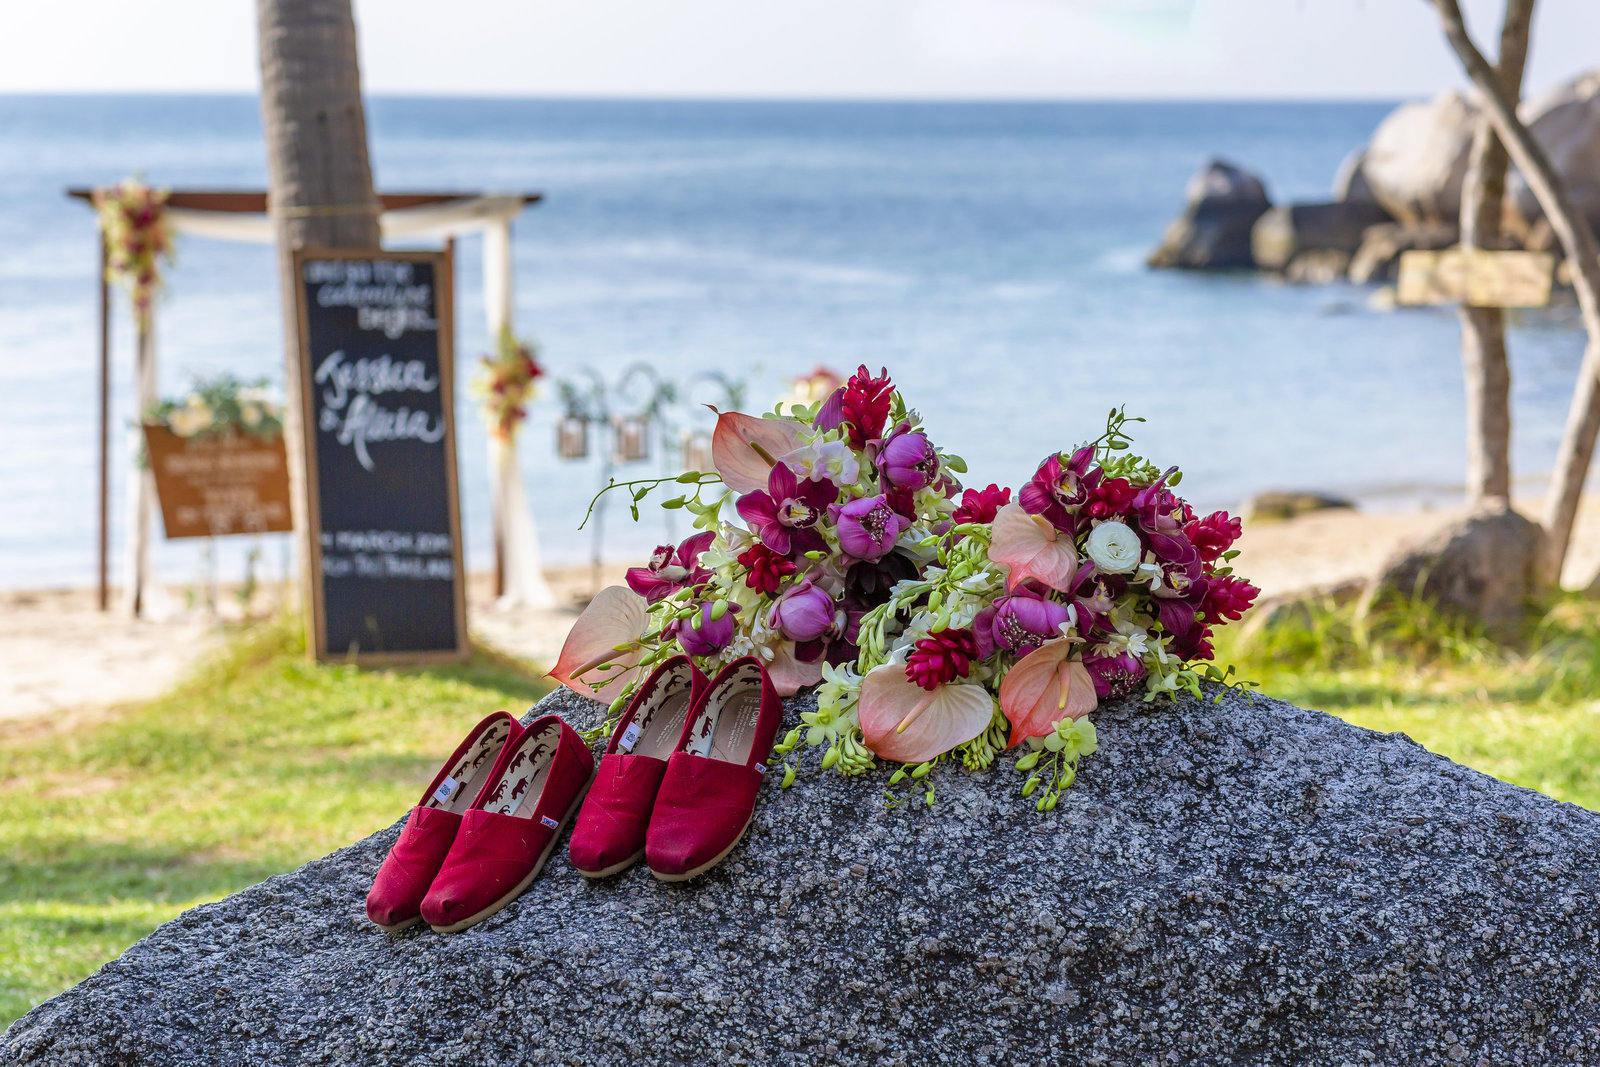 Toms shoes and flowers on a rock